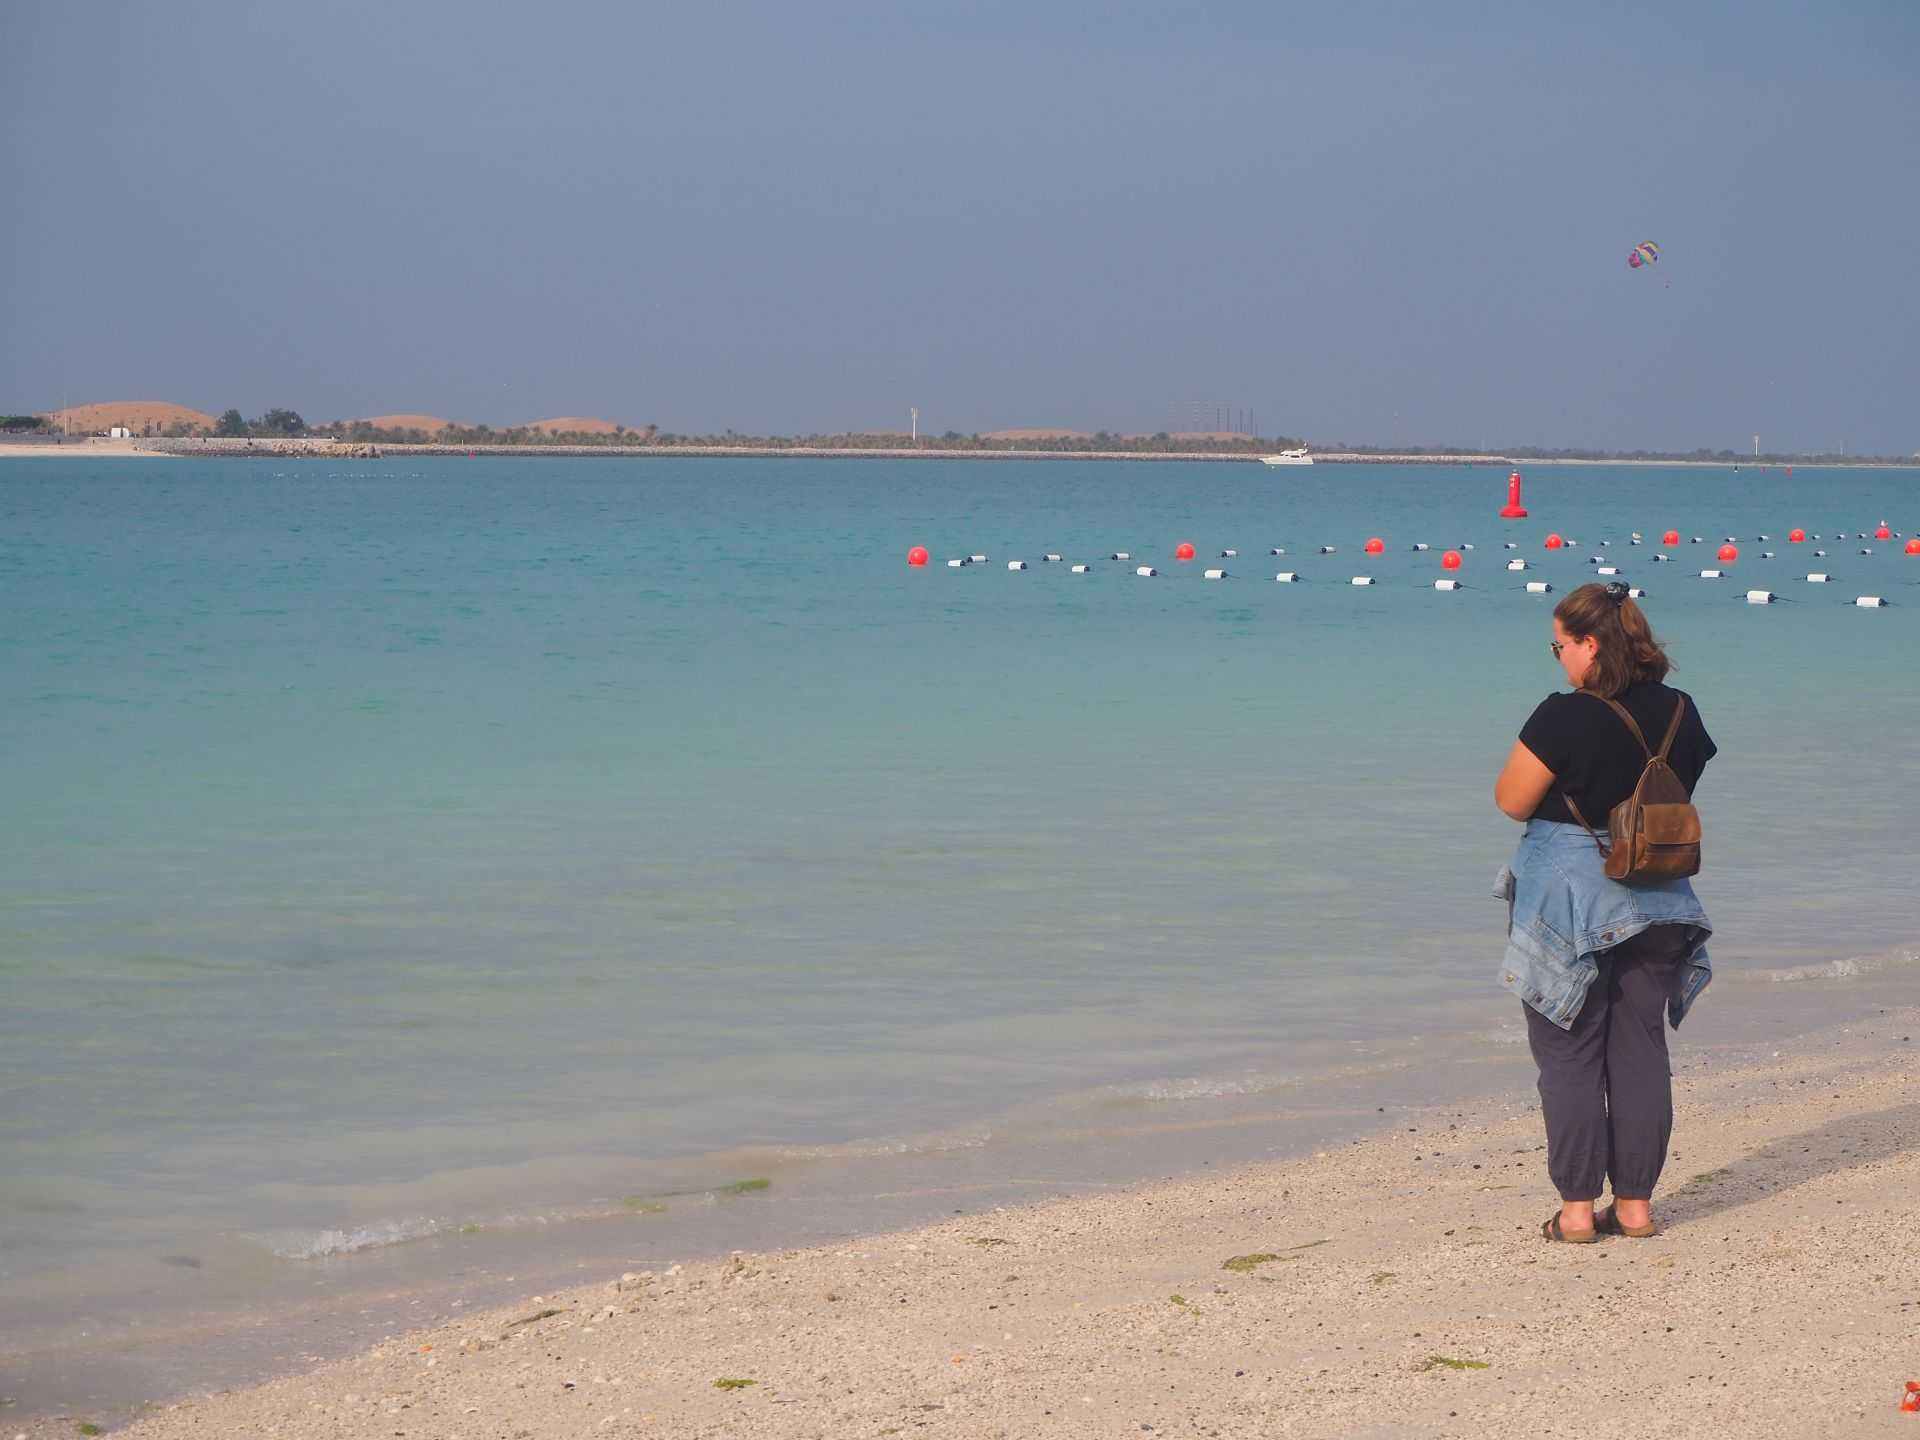 on Abu Dhabi beach